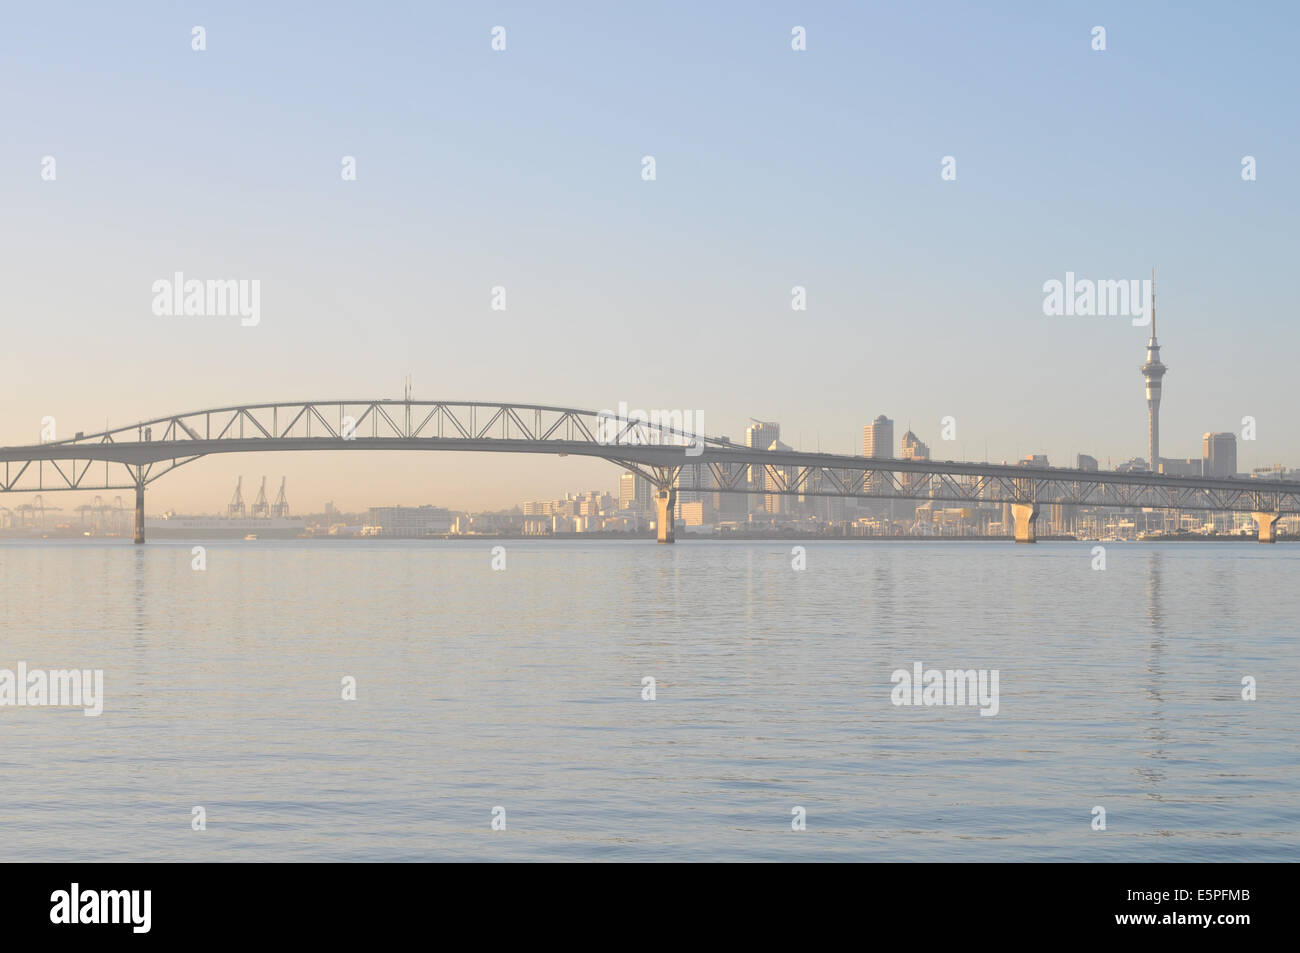 View of Auckland Harbour Bridge from Birkenhead wharf in early morning light with cbd in background - Stock Image